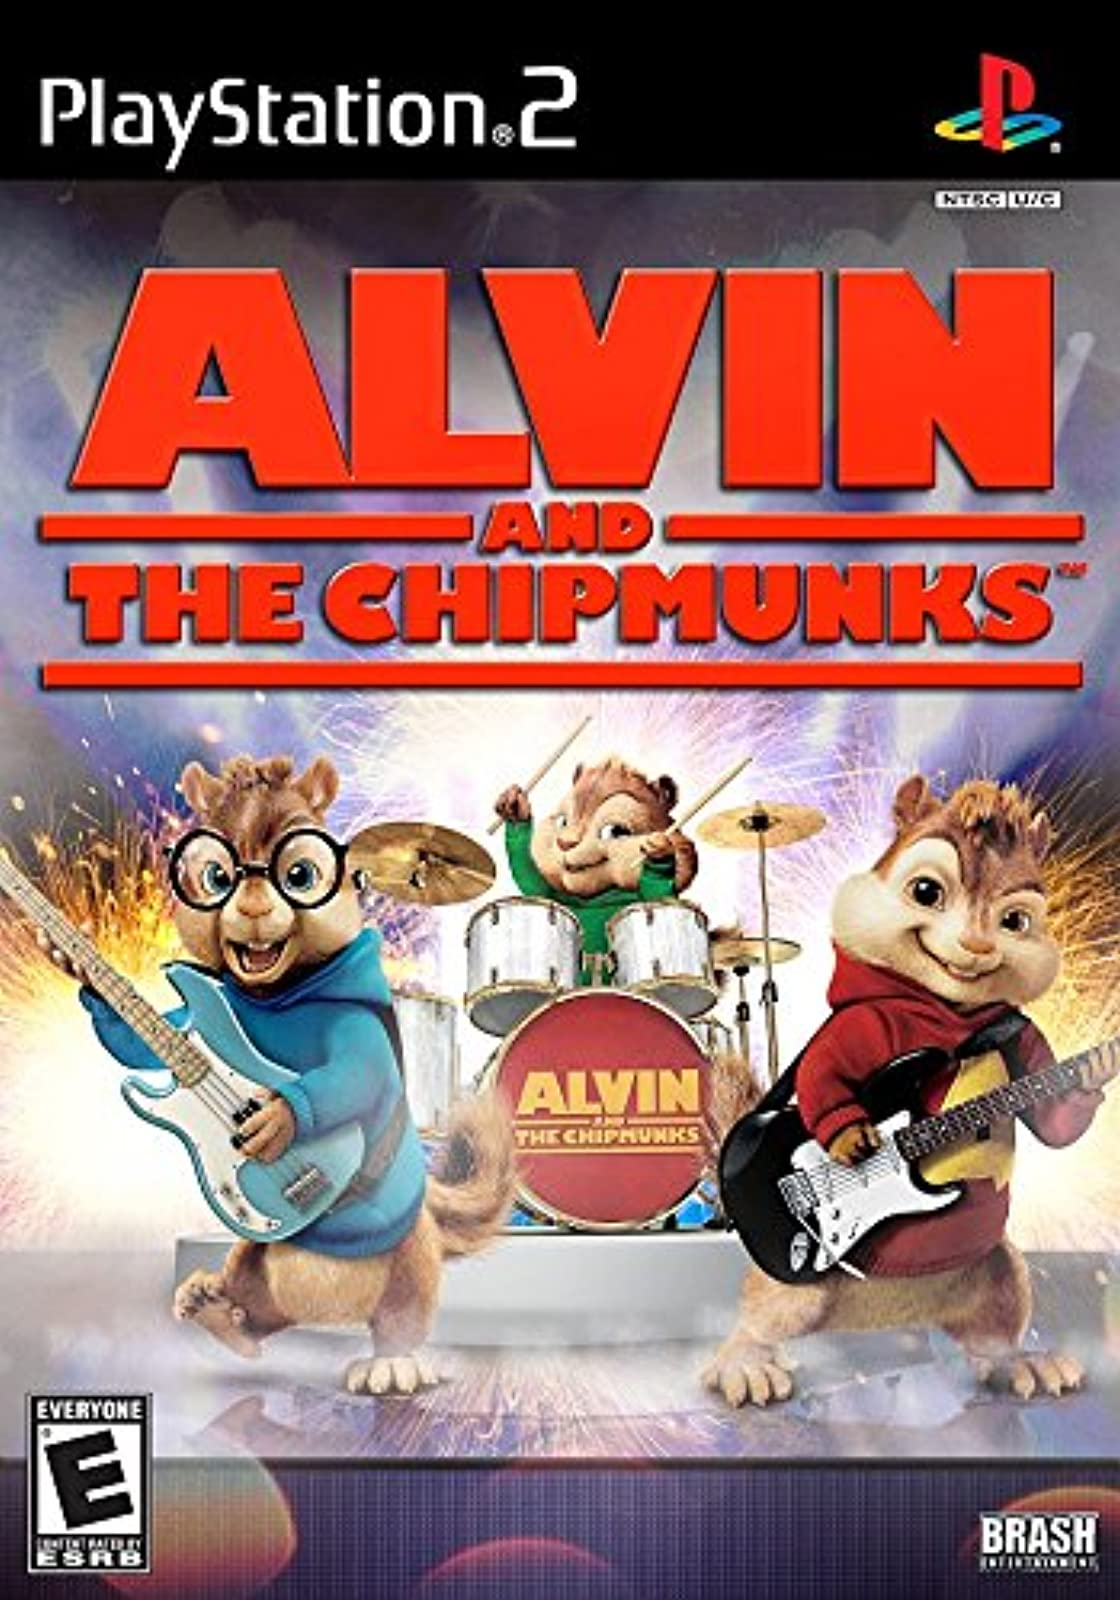 Alvin And The Chipmunks For PlayStation 2 PS2